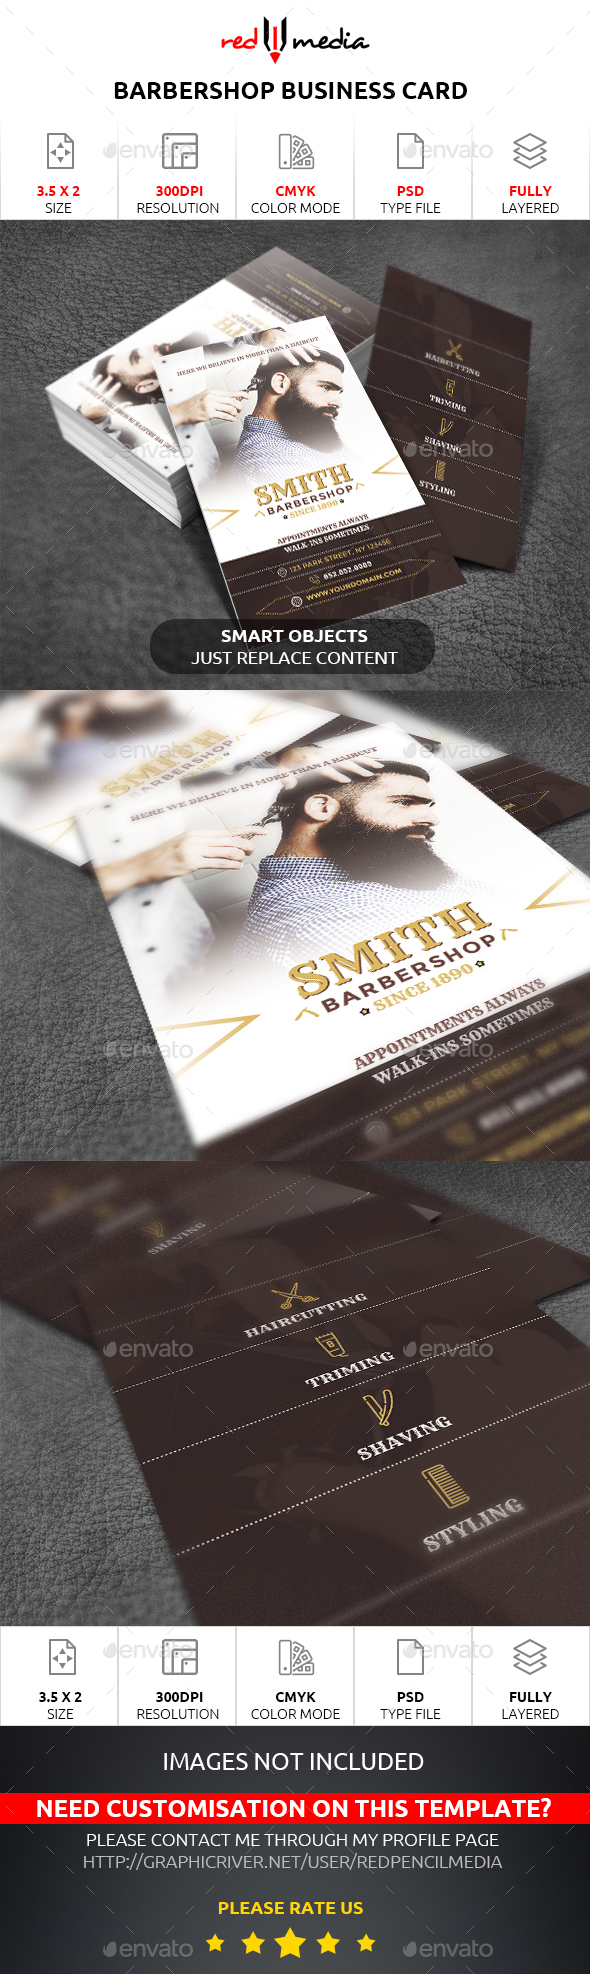 Barbershop Business Card - Business Cards Print Templates